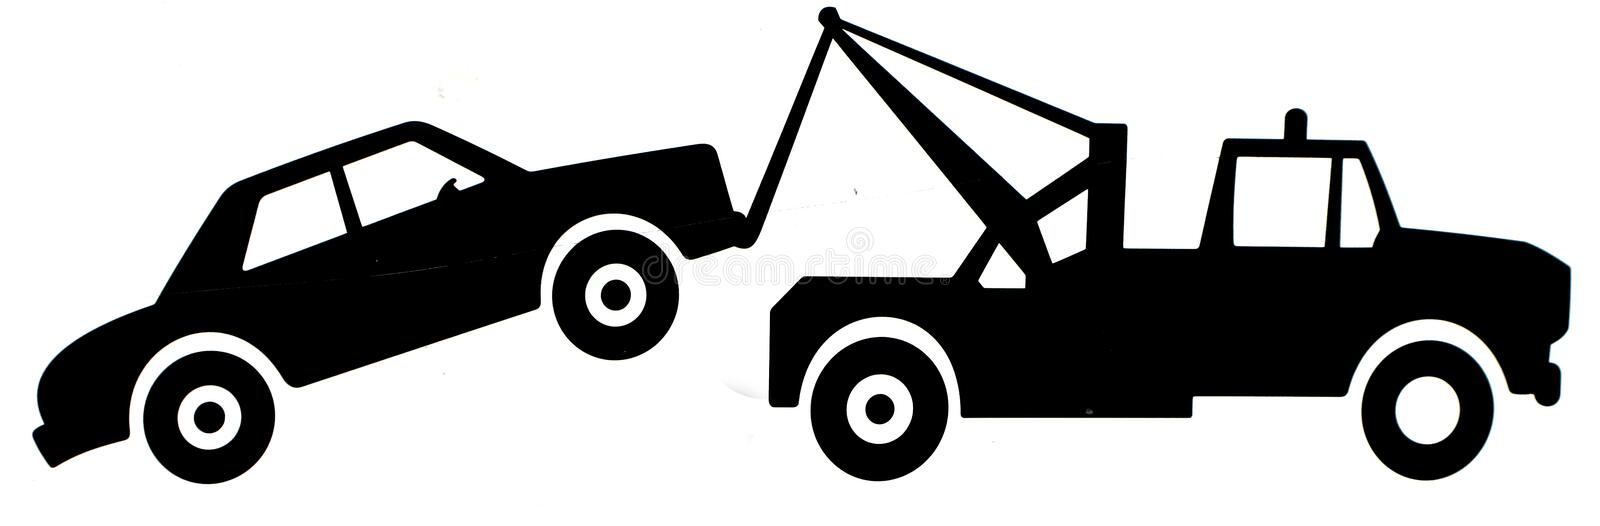 Tow truck sign. Silhouetted illustration of tow truck towing motor vehicle, isolated on white background